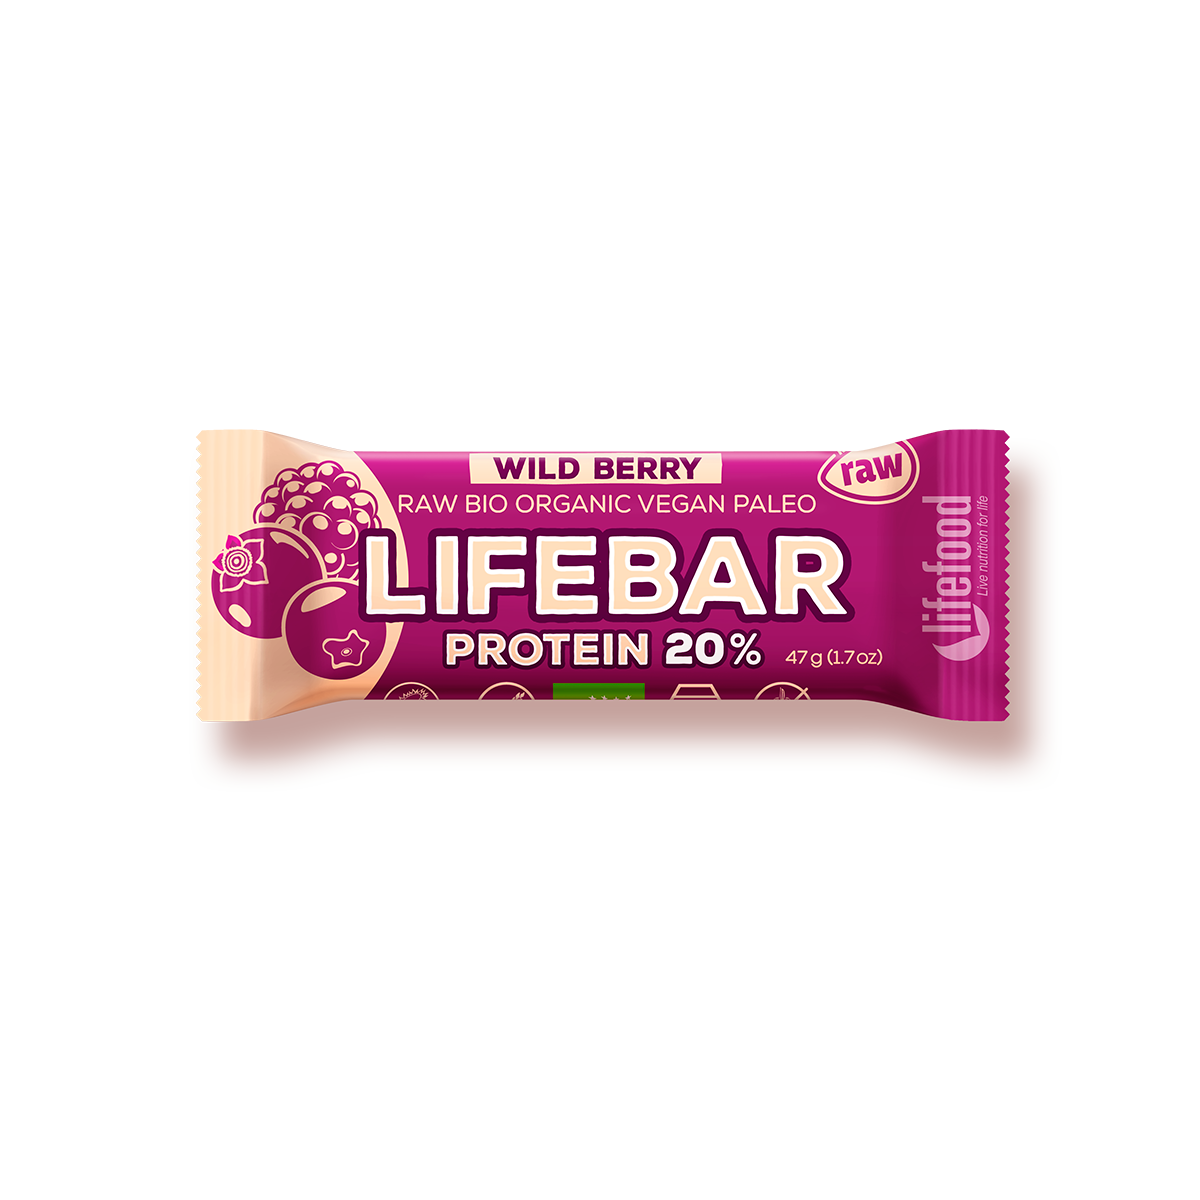 http://contao.lifefood.eu/tl_files/data/en/NEW products/lifebars/lifebars protein/wild berry/Lifebar-Protein-WILD-BERRY_1200x1200px.png